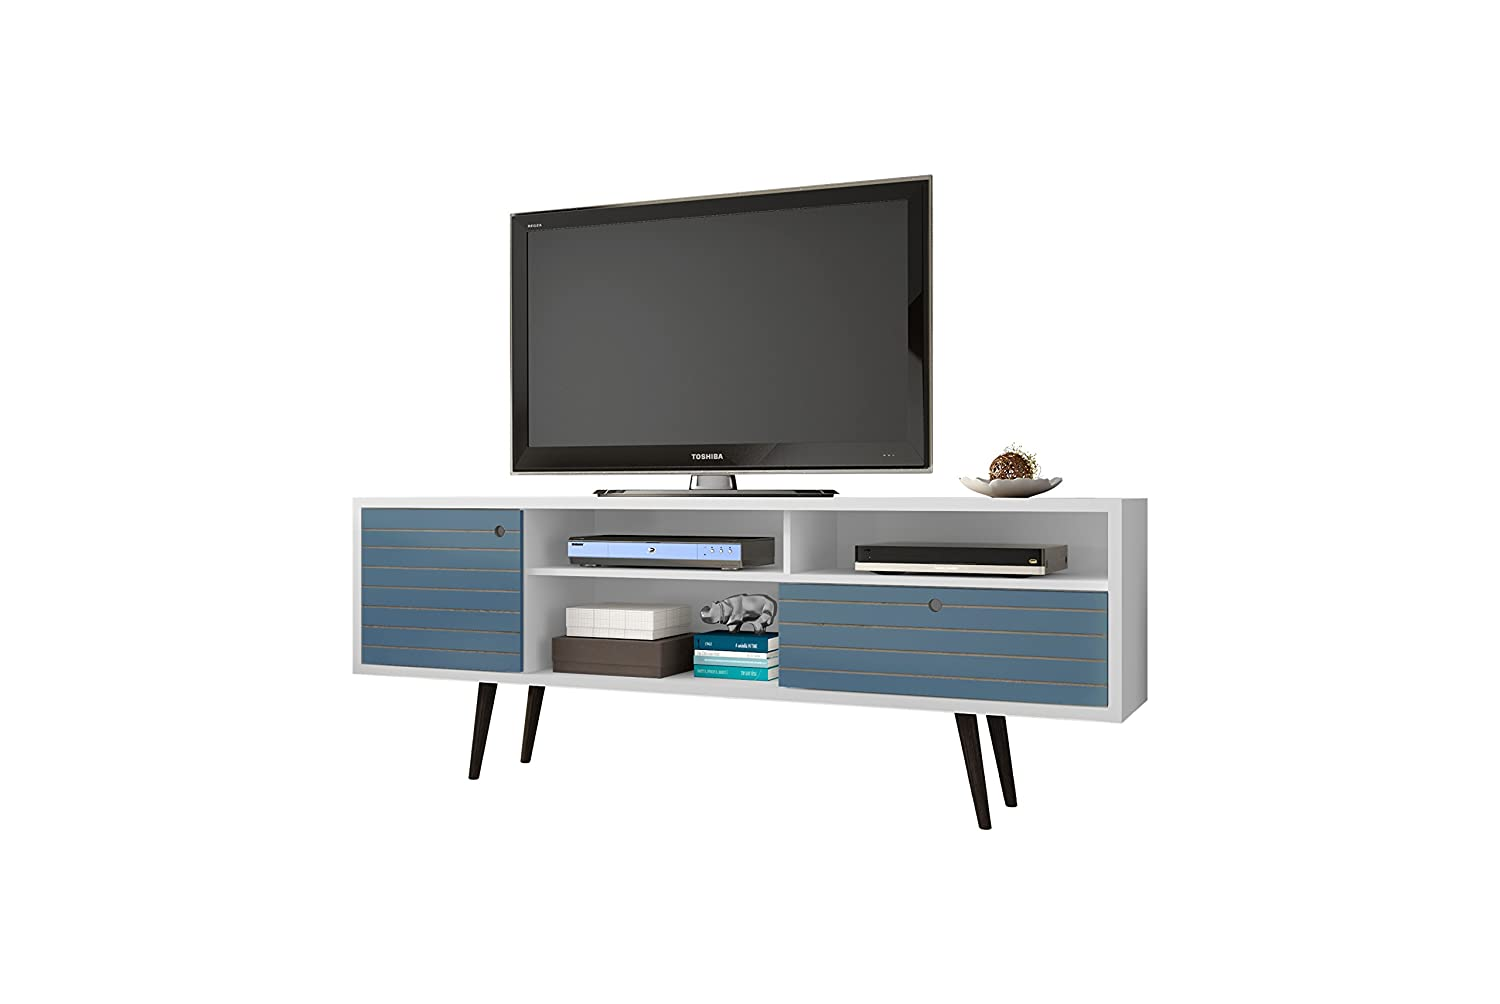 Manhattan Comfort Liberty Collection Mid Century Modern TV Stand With Three Shelves, One Cabinet and One Drawer With Splayed Legs, Blue/White